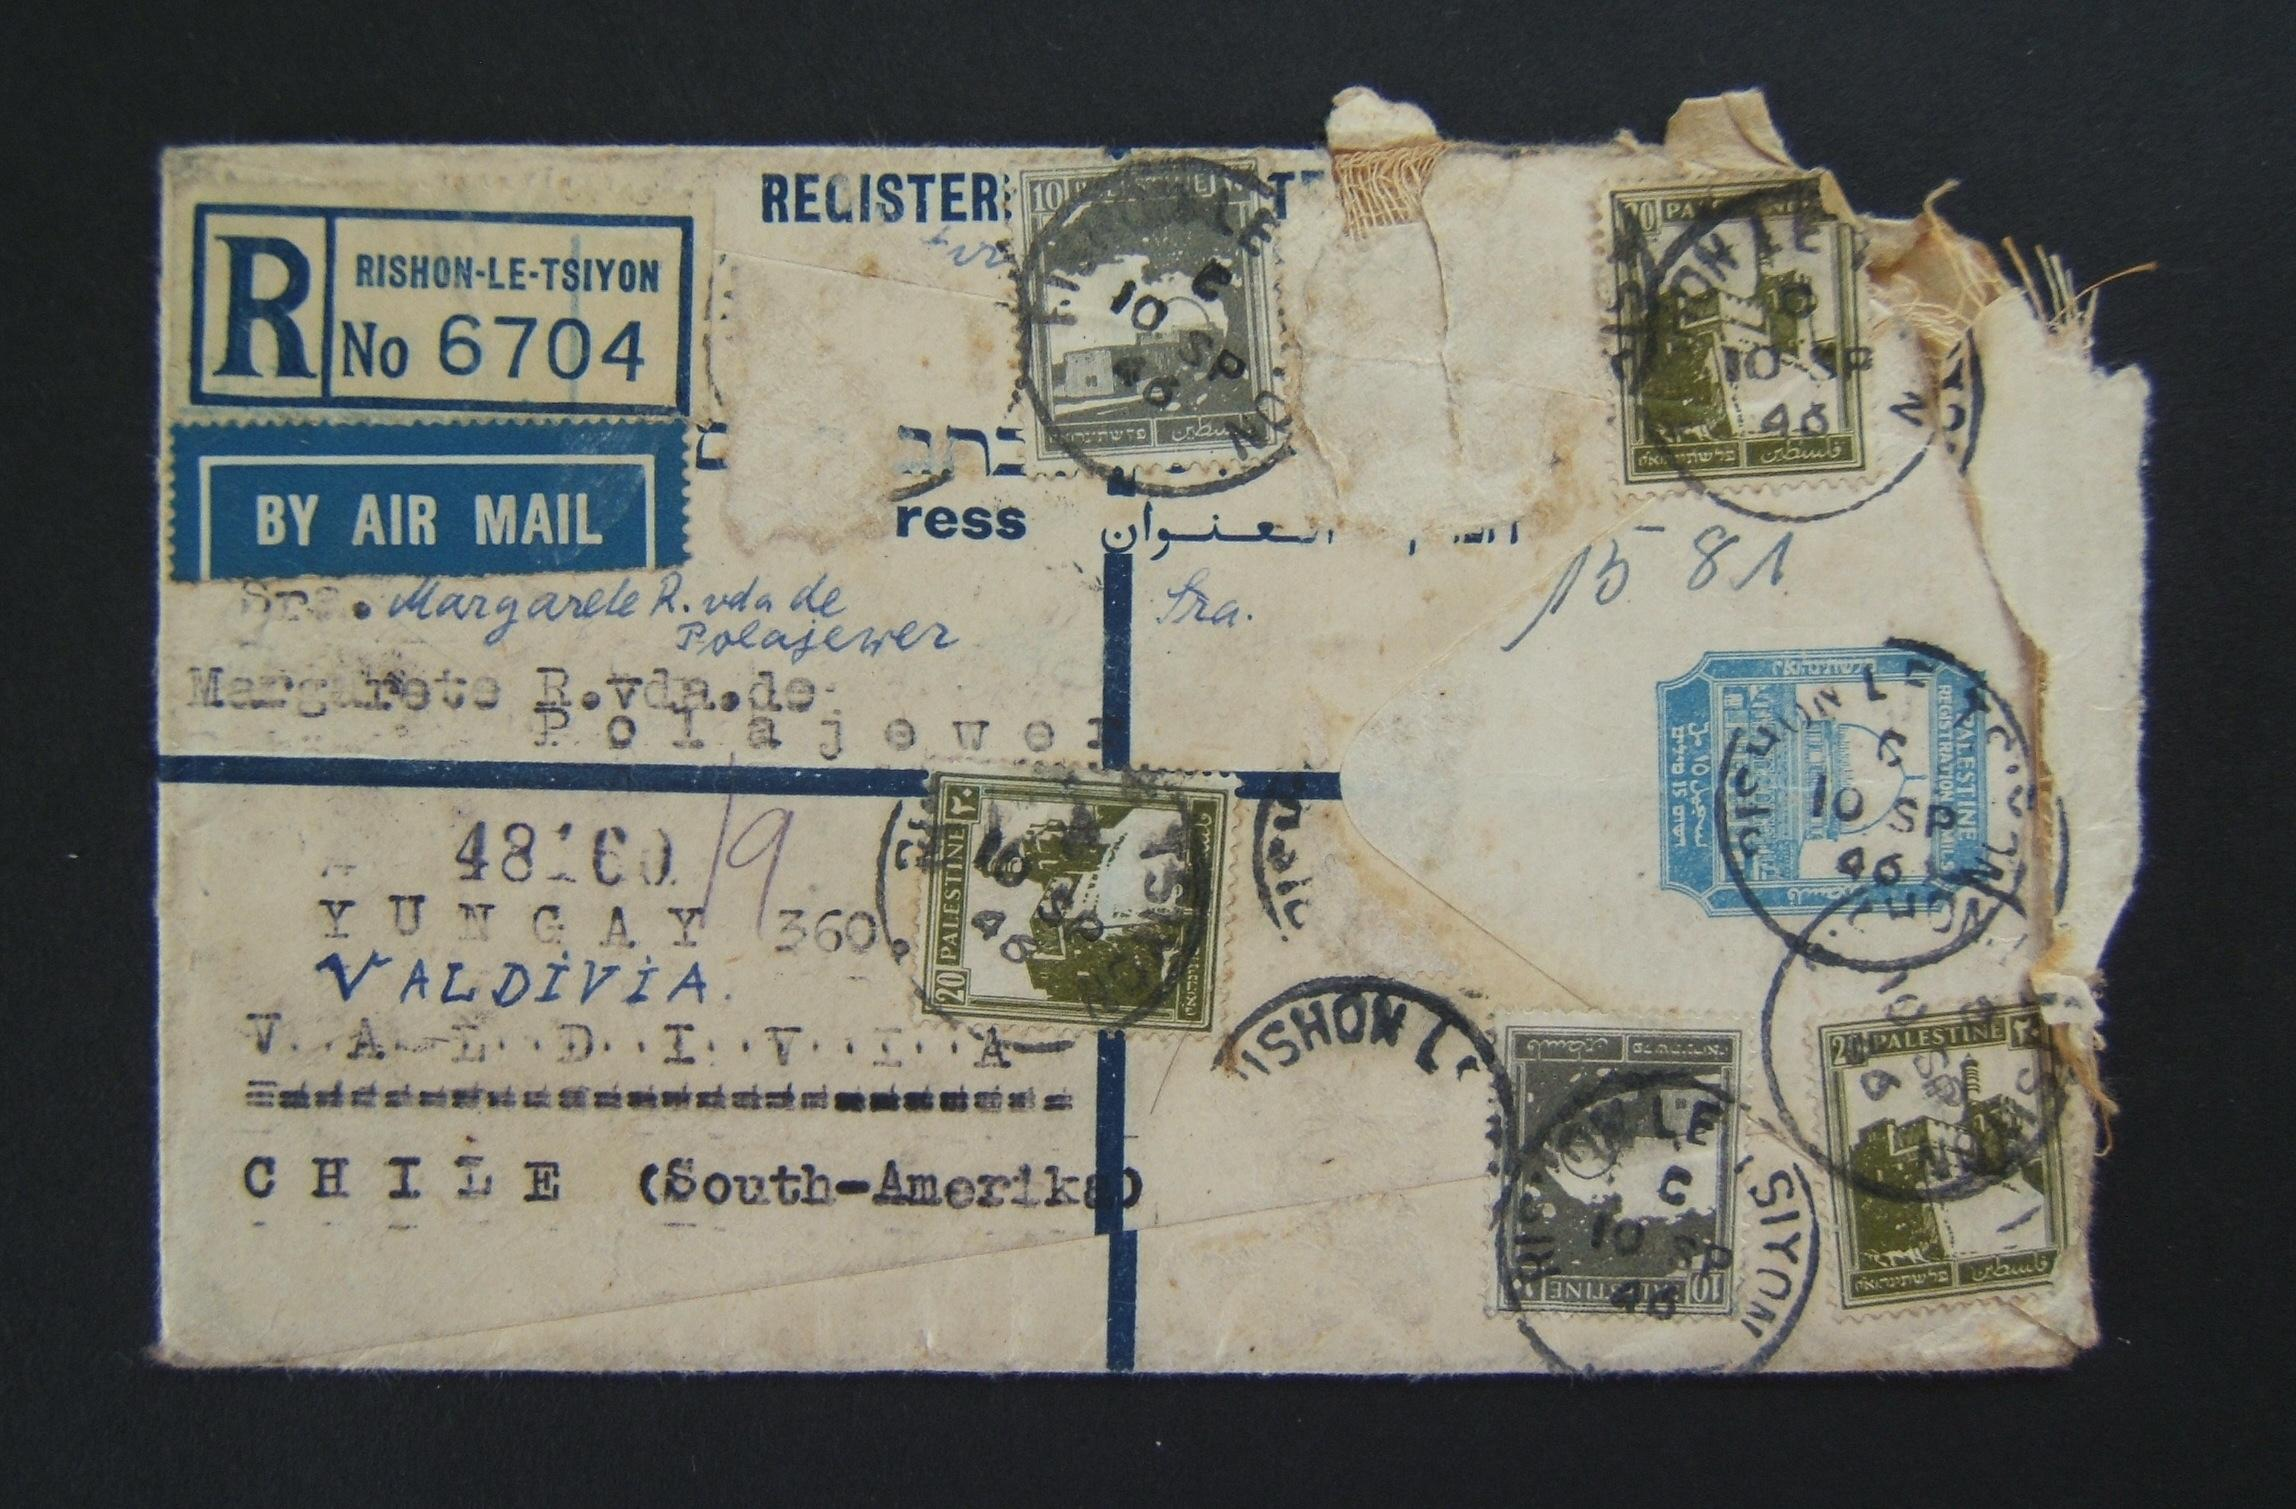 RE envelope ex RISHON LEZION to VALDIVIA, CHILE via airmail - sent air to UK, sea to Portugal; flown BSAA via Lisbon, Bathurst (last time!) & Natal using 1945 small Mandate Reg. En